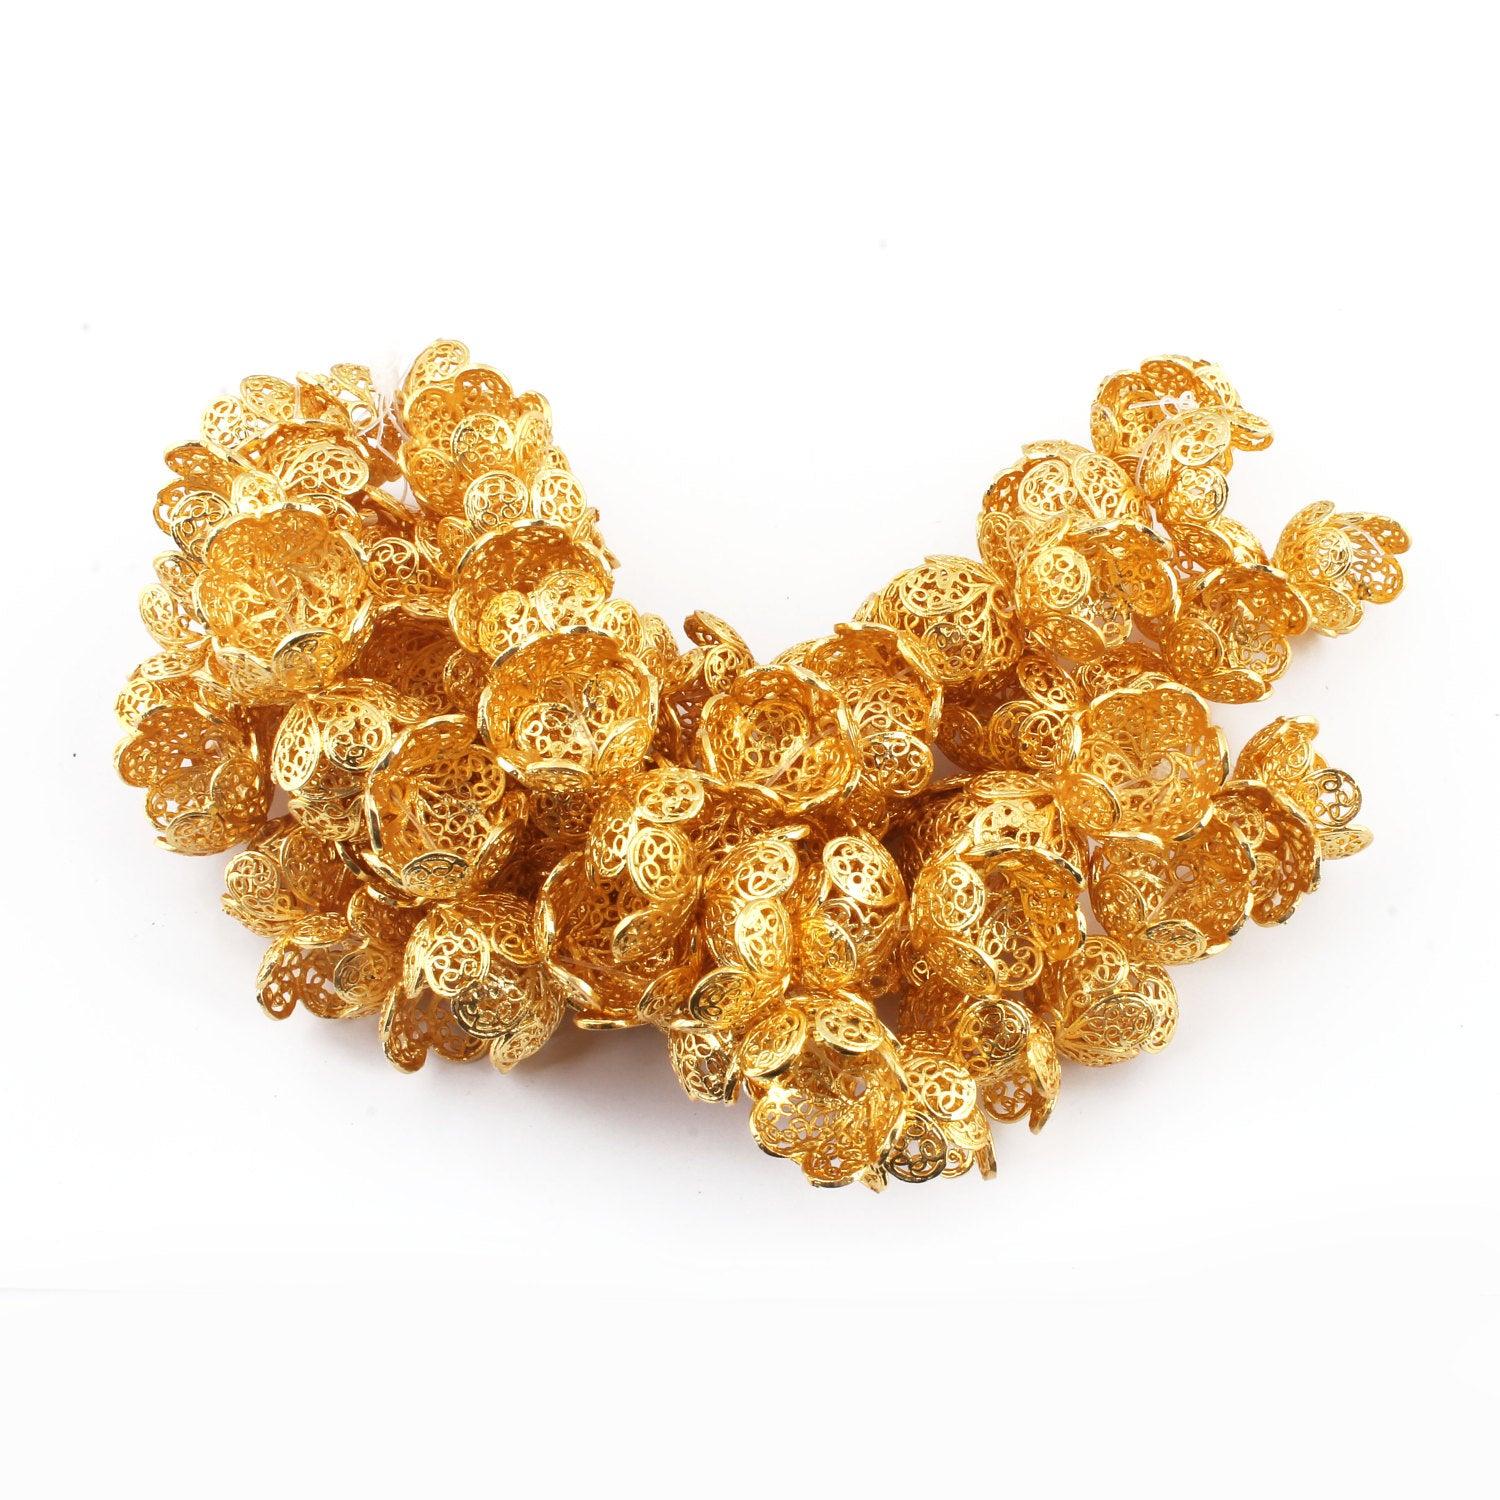 1 Strand Flower Half Cap 24K Gold Plated on Copper Half Cap Beads 4mmX9mm 7.5 Inches Gpc149